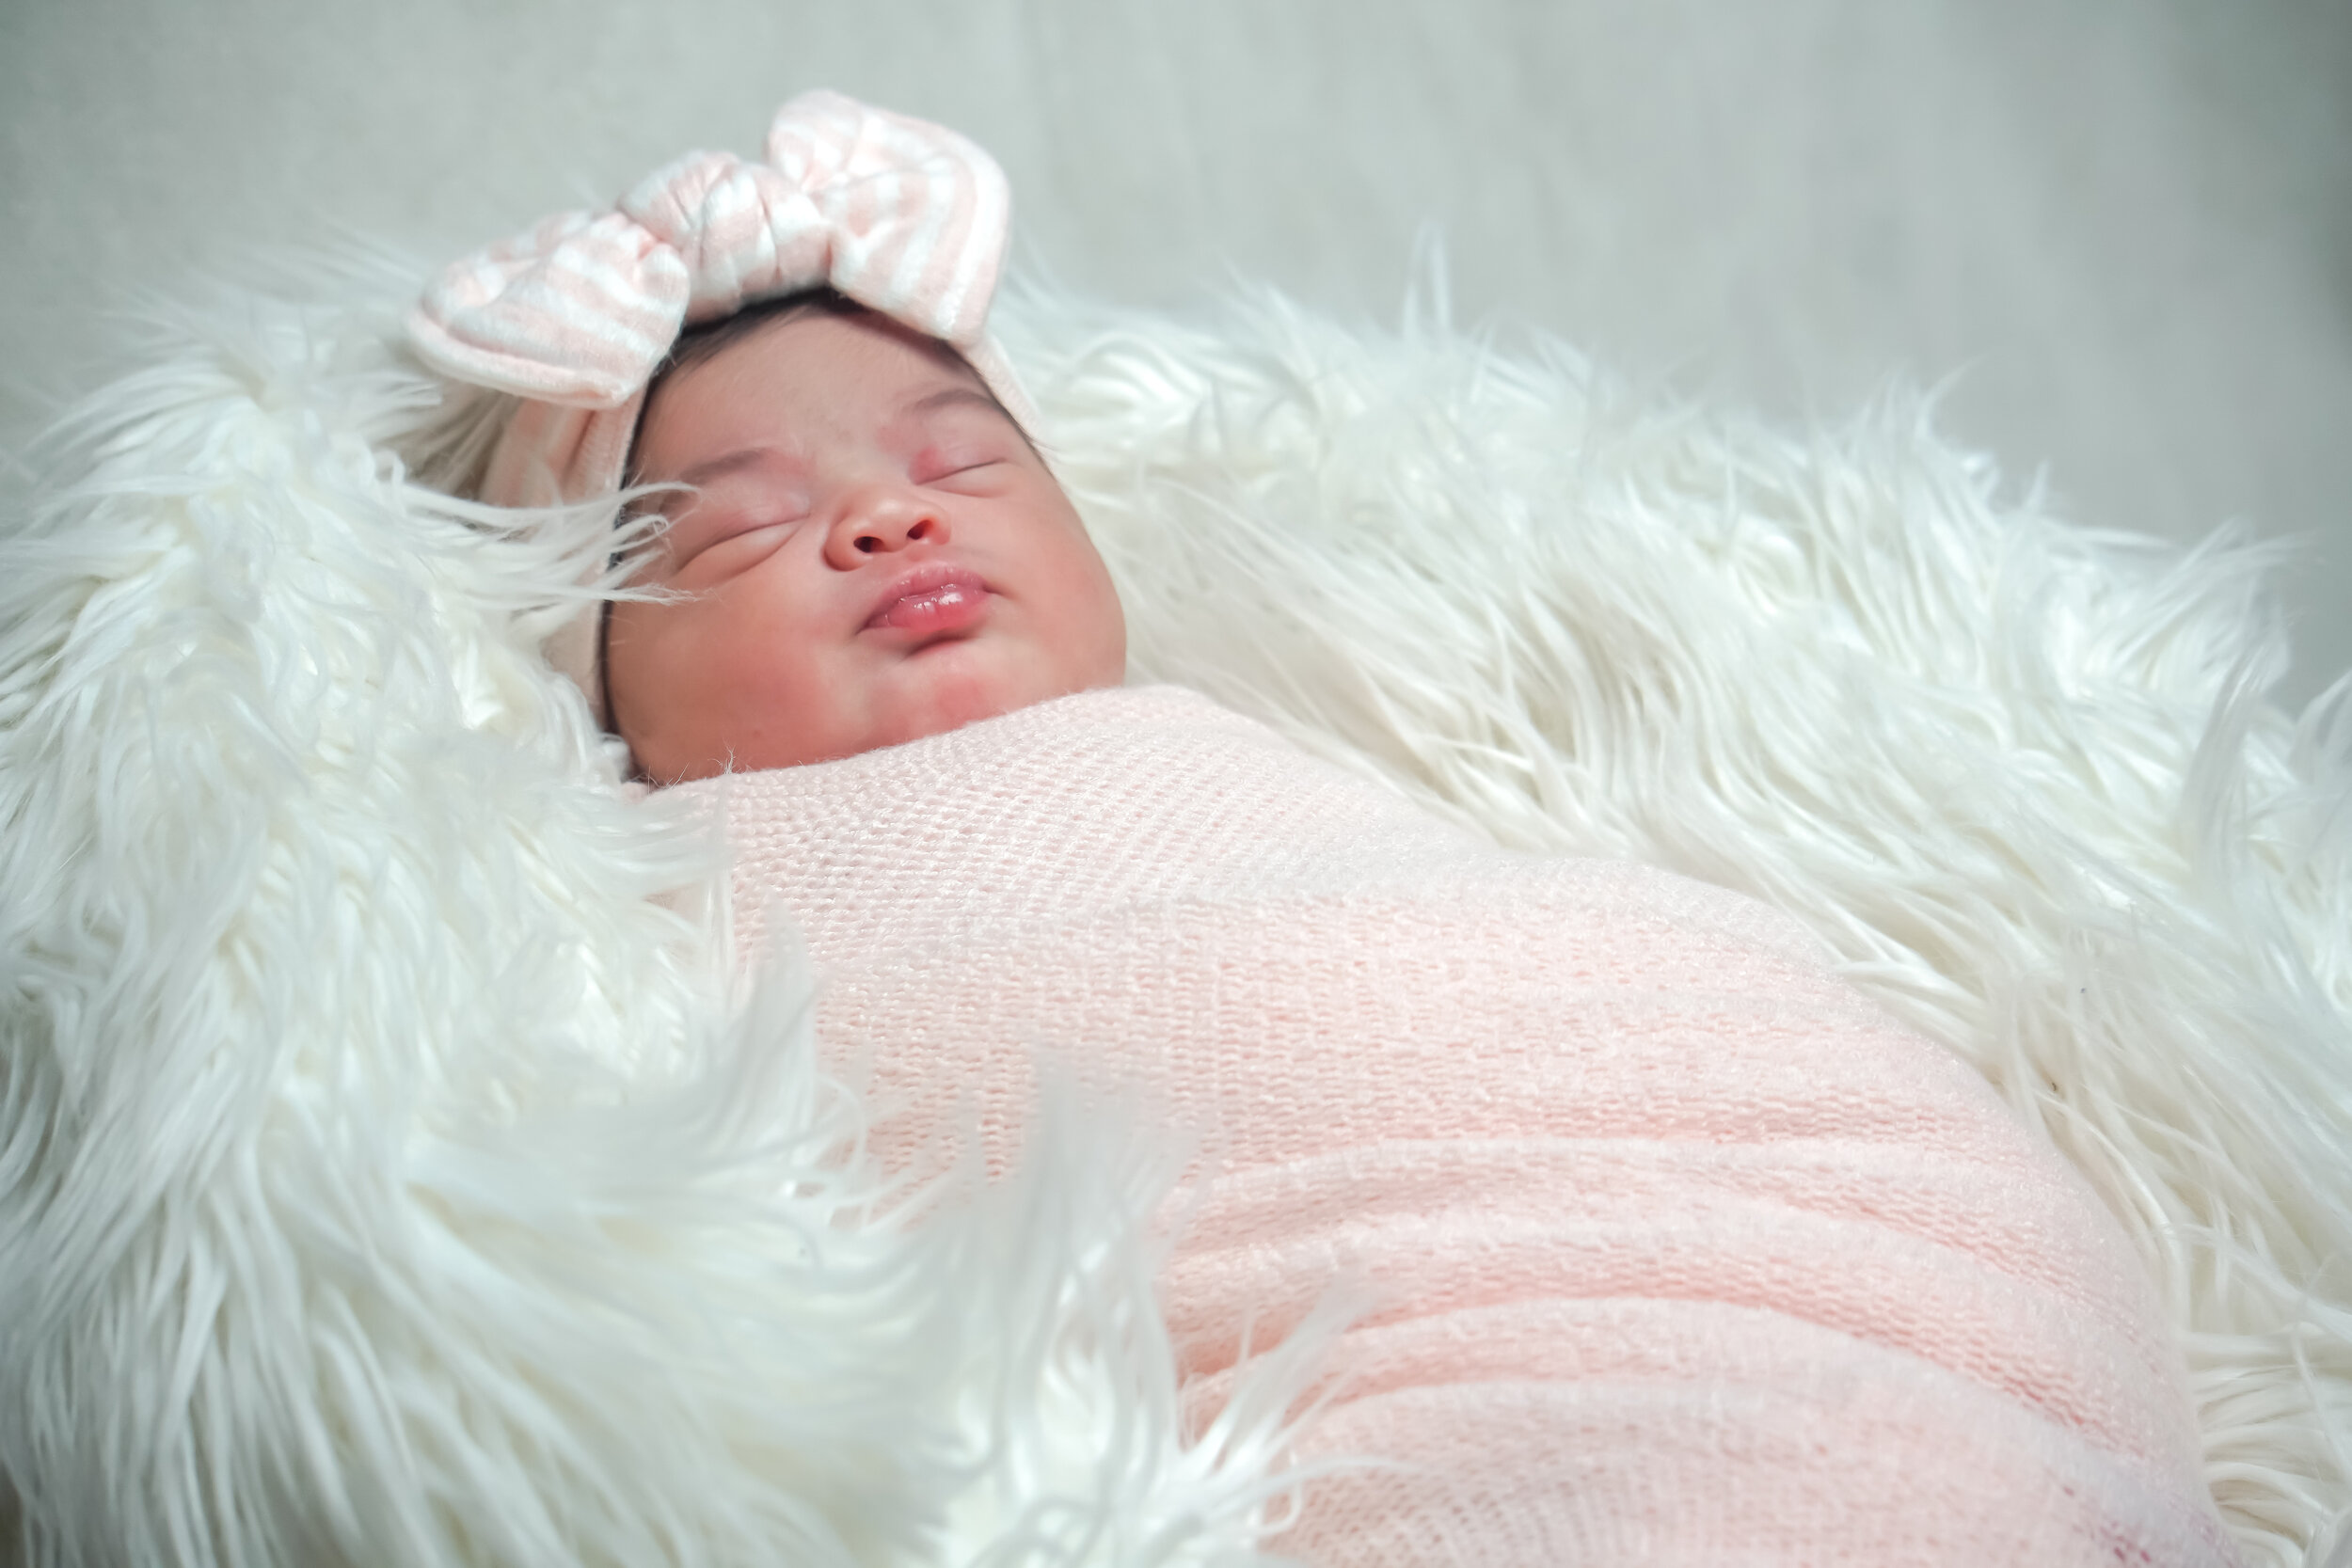 Naviyah Chavez was born Wednesday, September 25th at 2:04am, weighing 6 lbs 14 oz.